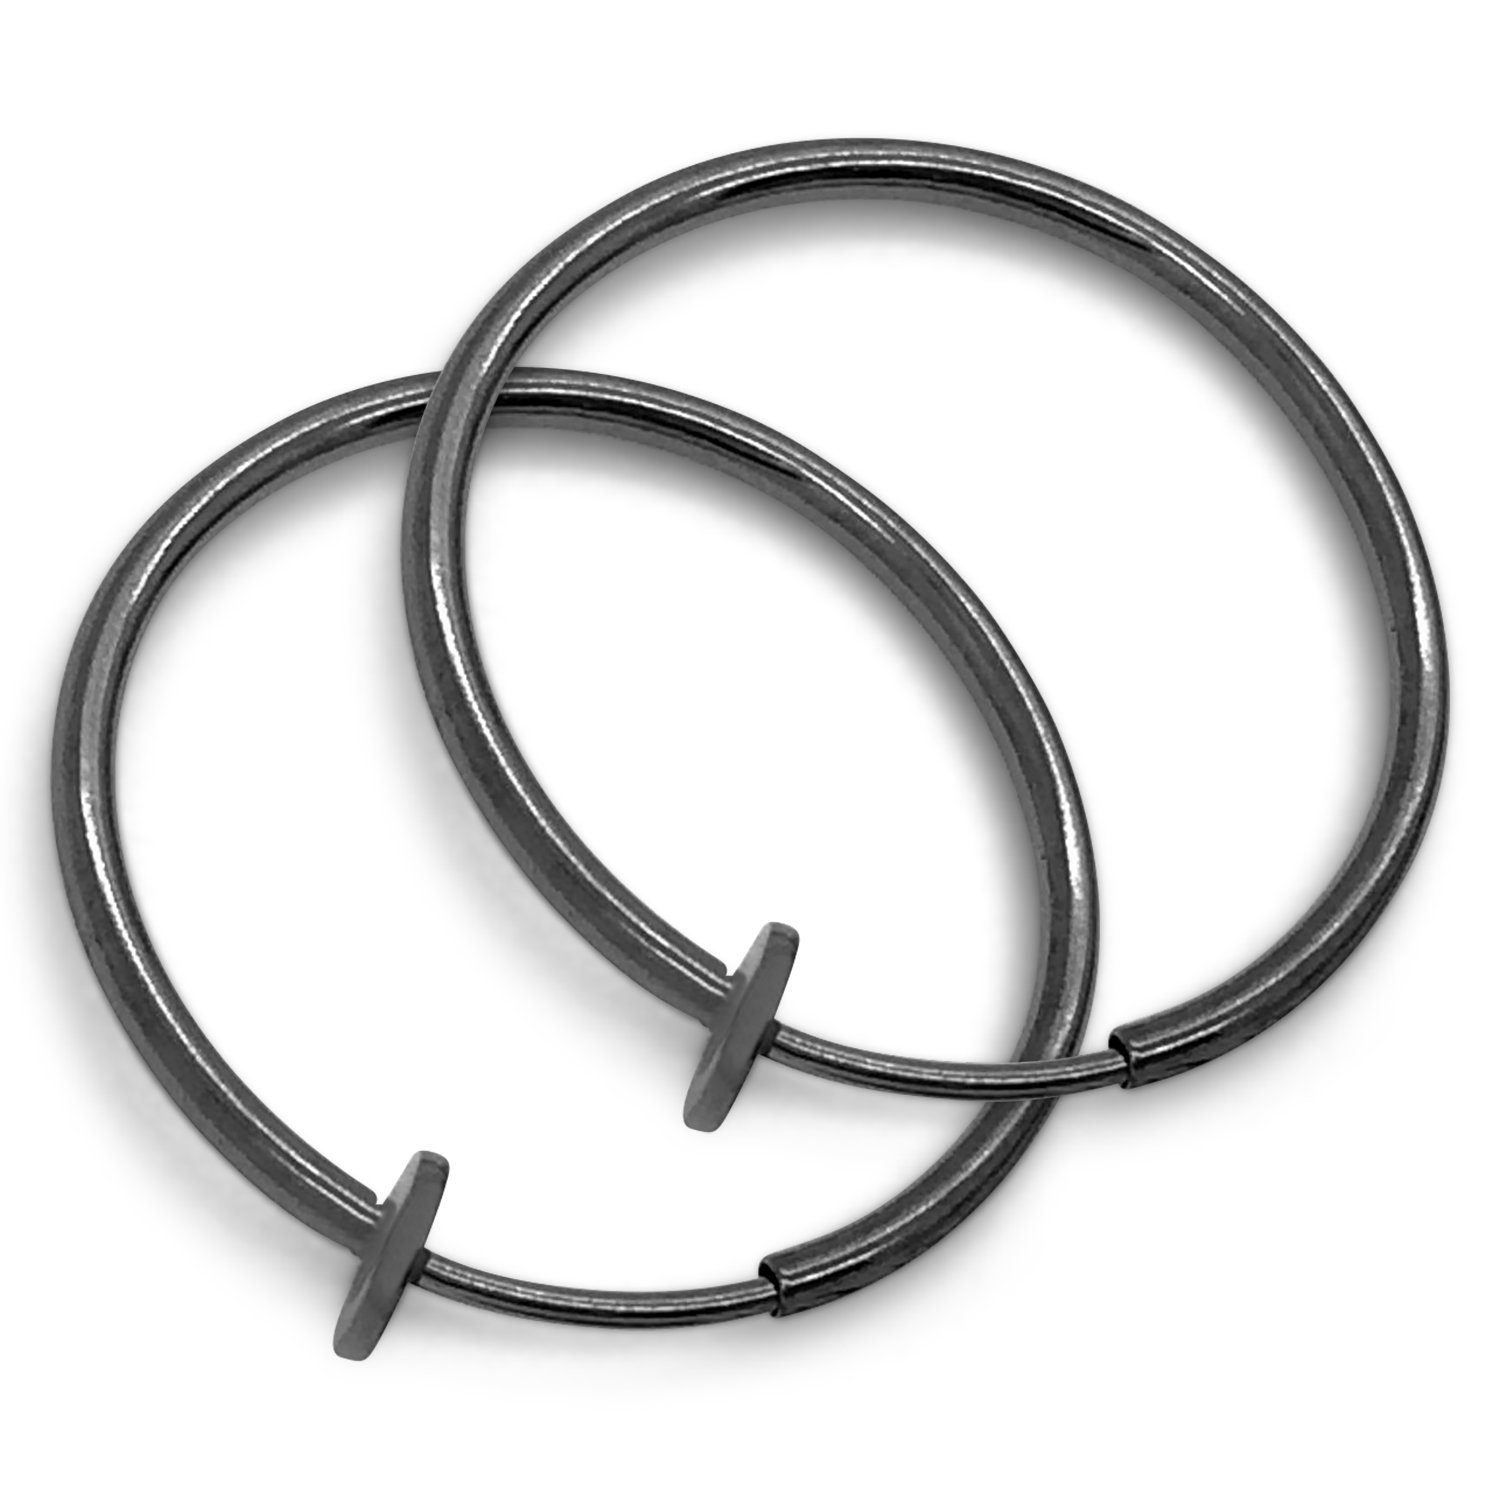 Silver Spring Hoops Earrings Clip On-Small, Medium & Large Silver Clip Hoop Earrings for Women & Girls (Dark Silver Medium)